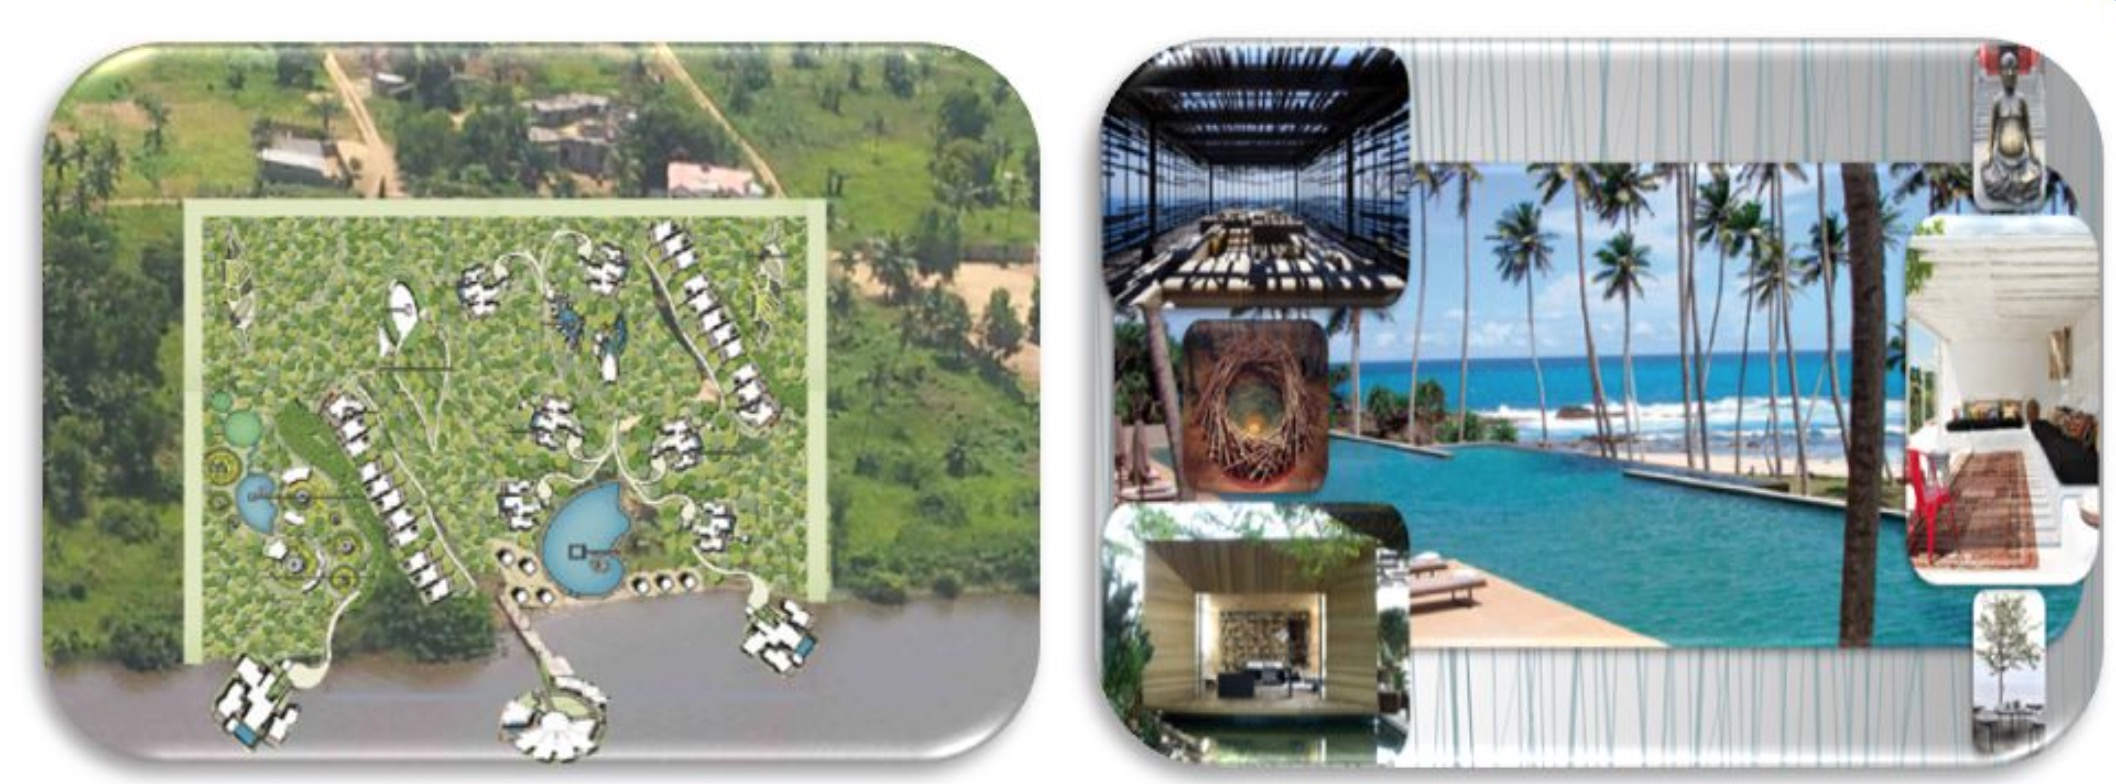 Khouri Group Green Technologies -Sustained Resort Project TOGO Beach